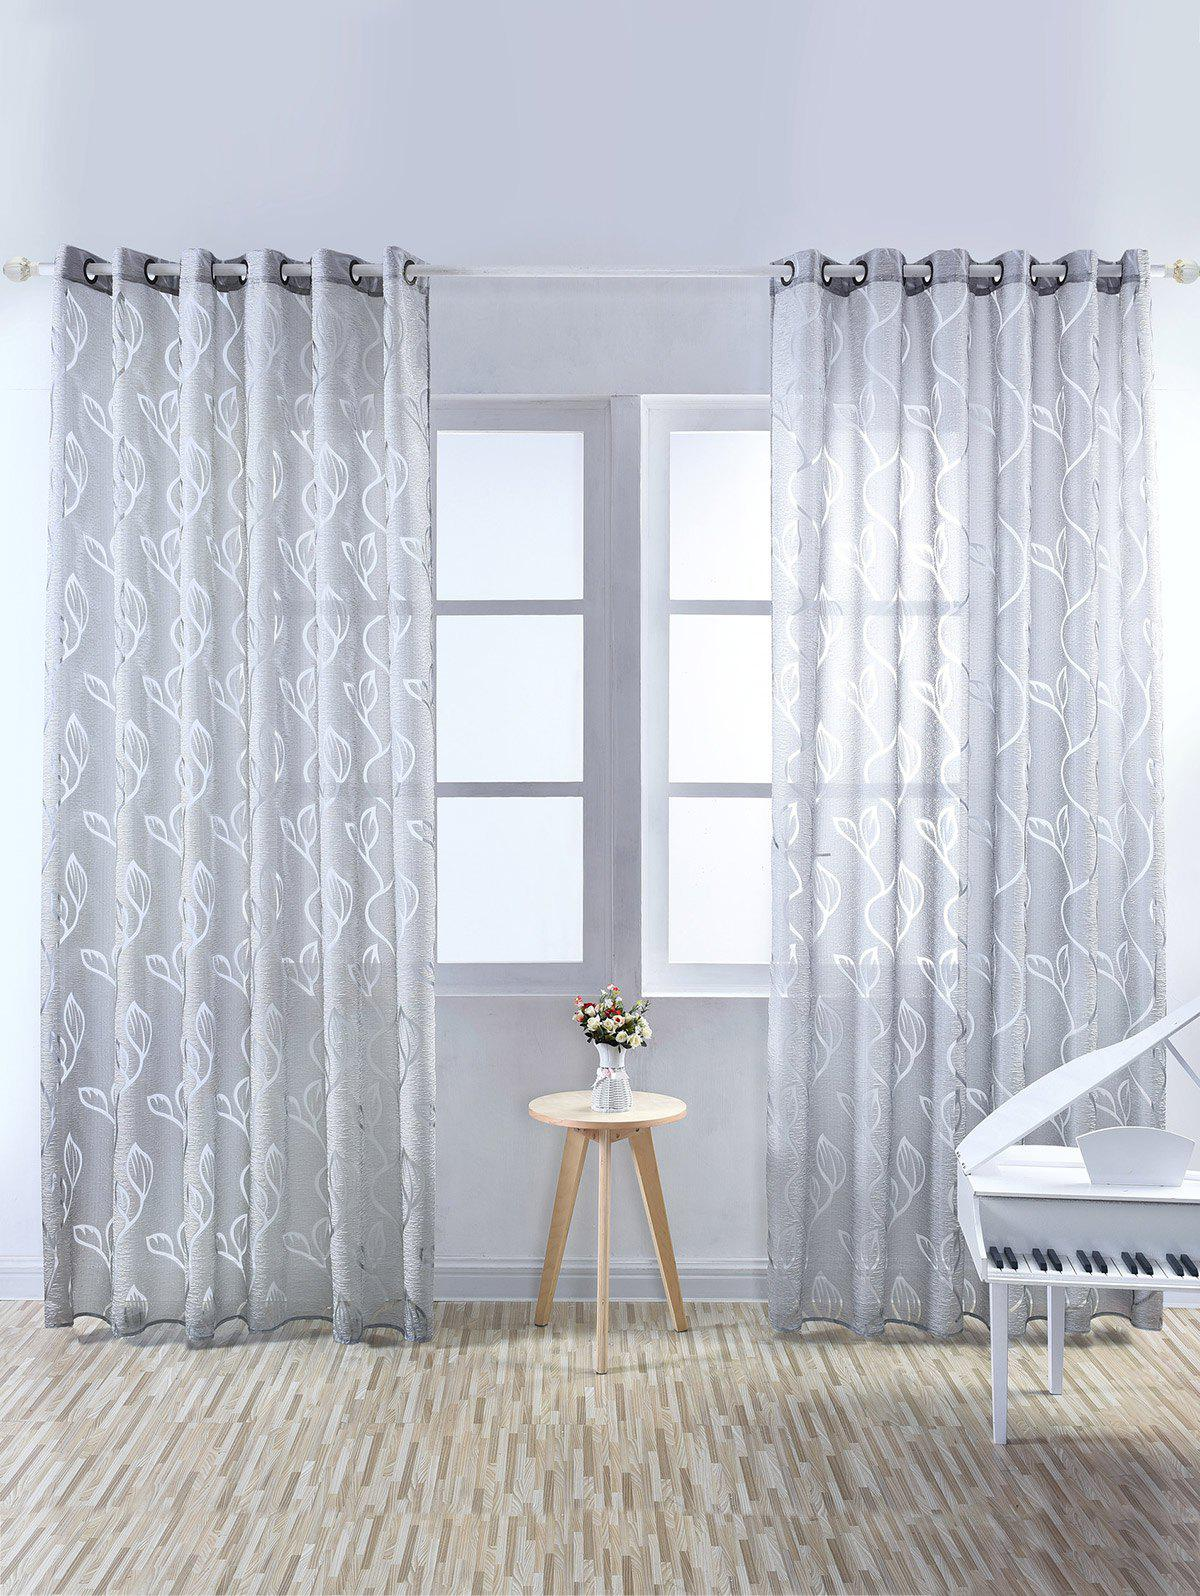 Window Shading Leaf Embroider Tulle CurtainHOME<br><br>Size: 100*250CM; Color: GRAY; Applicable Window Type: French Window; Function: Translucidus (Shading Rate 1%-40%); Installation Type: Ceiling Installation; Location: Window; Material: Cloth Curtain + Voile Curtain; Opening and Closing Method: Left and Right Biparting Open; Processing: Punching; Processing Accessories Cost: Excluded; Style: European and American Style; Type: Curtain; Use: Cafe,Home,Hotel,Office; Weight: 0.3000kg; Package Contents: 1 x Window Curtain;